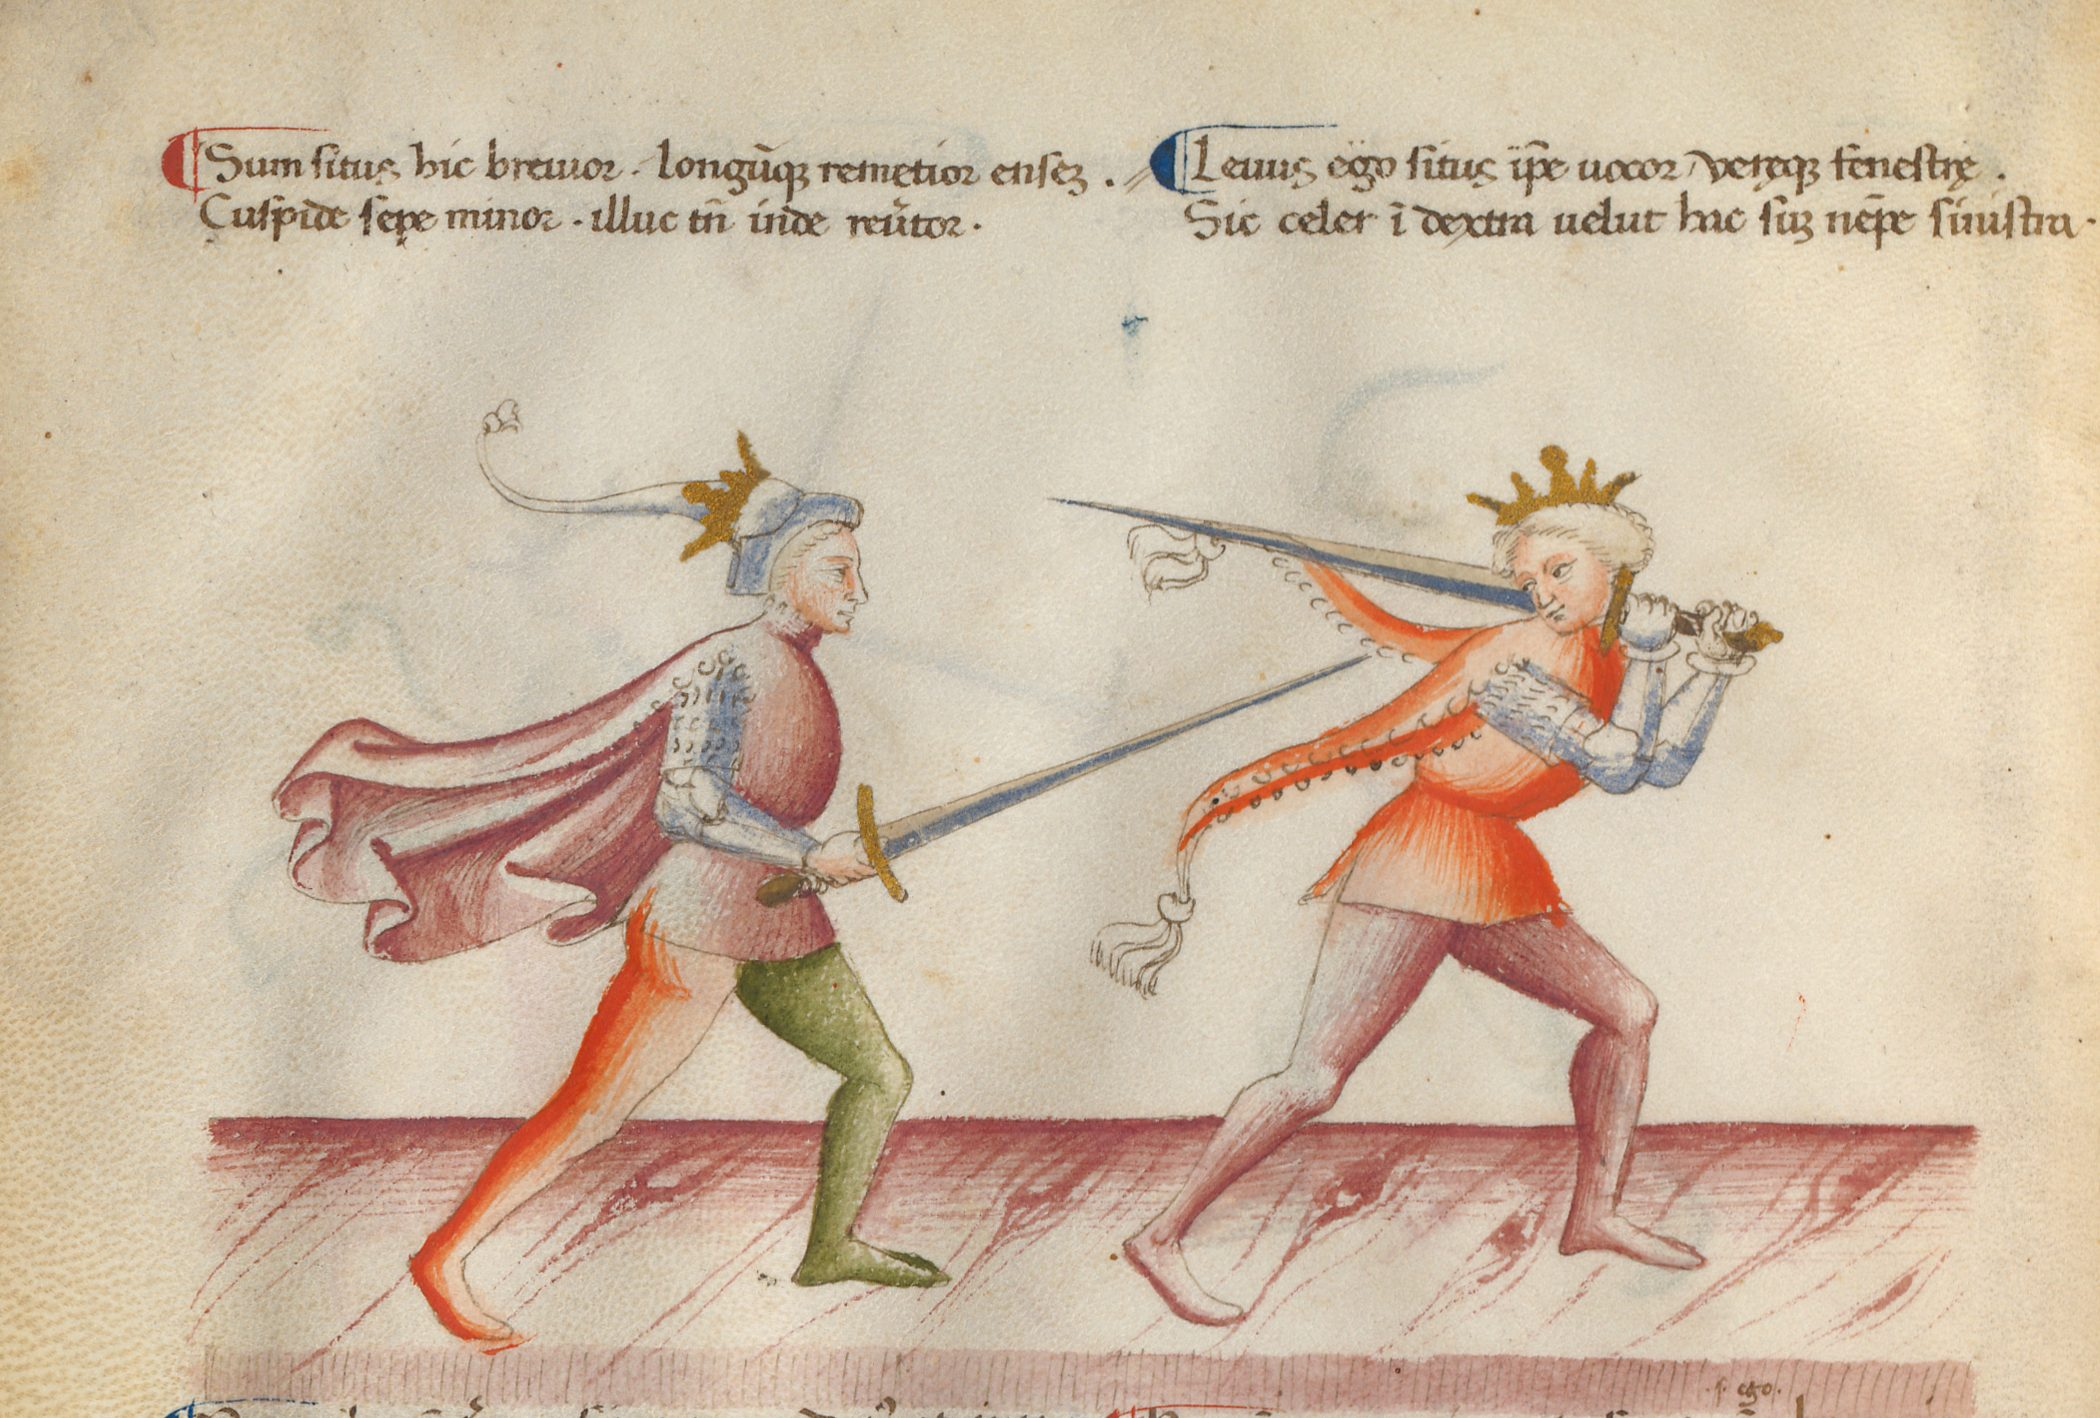 SWORDSMANSHIP IN THE ART OF ARMS, PART FOUR:  STABLE, STRIKING AND MUTABLE, REVISITED. THE TWELVE GUARDS OF THE SWORD